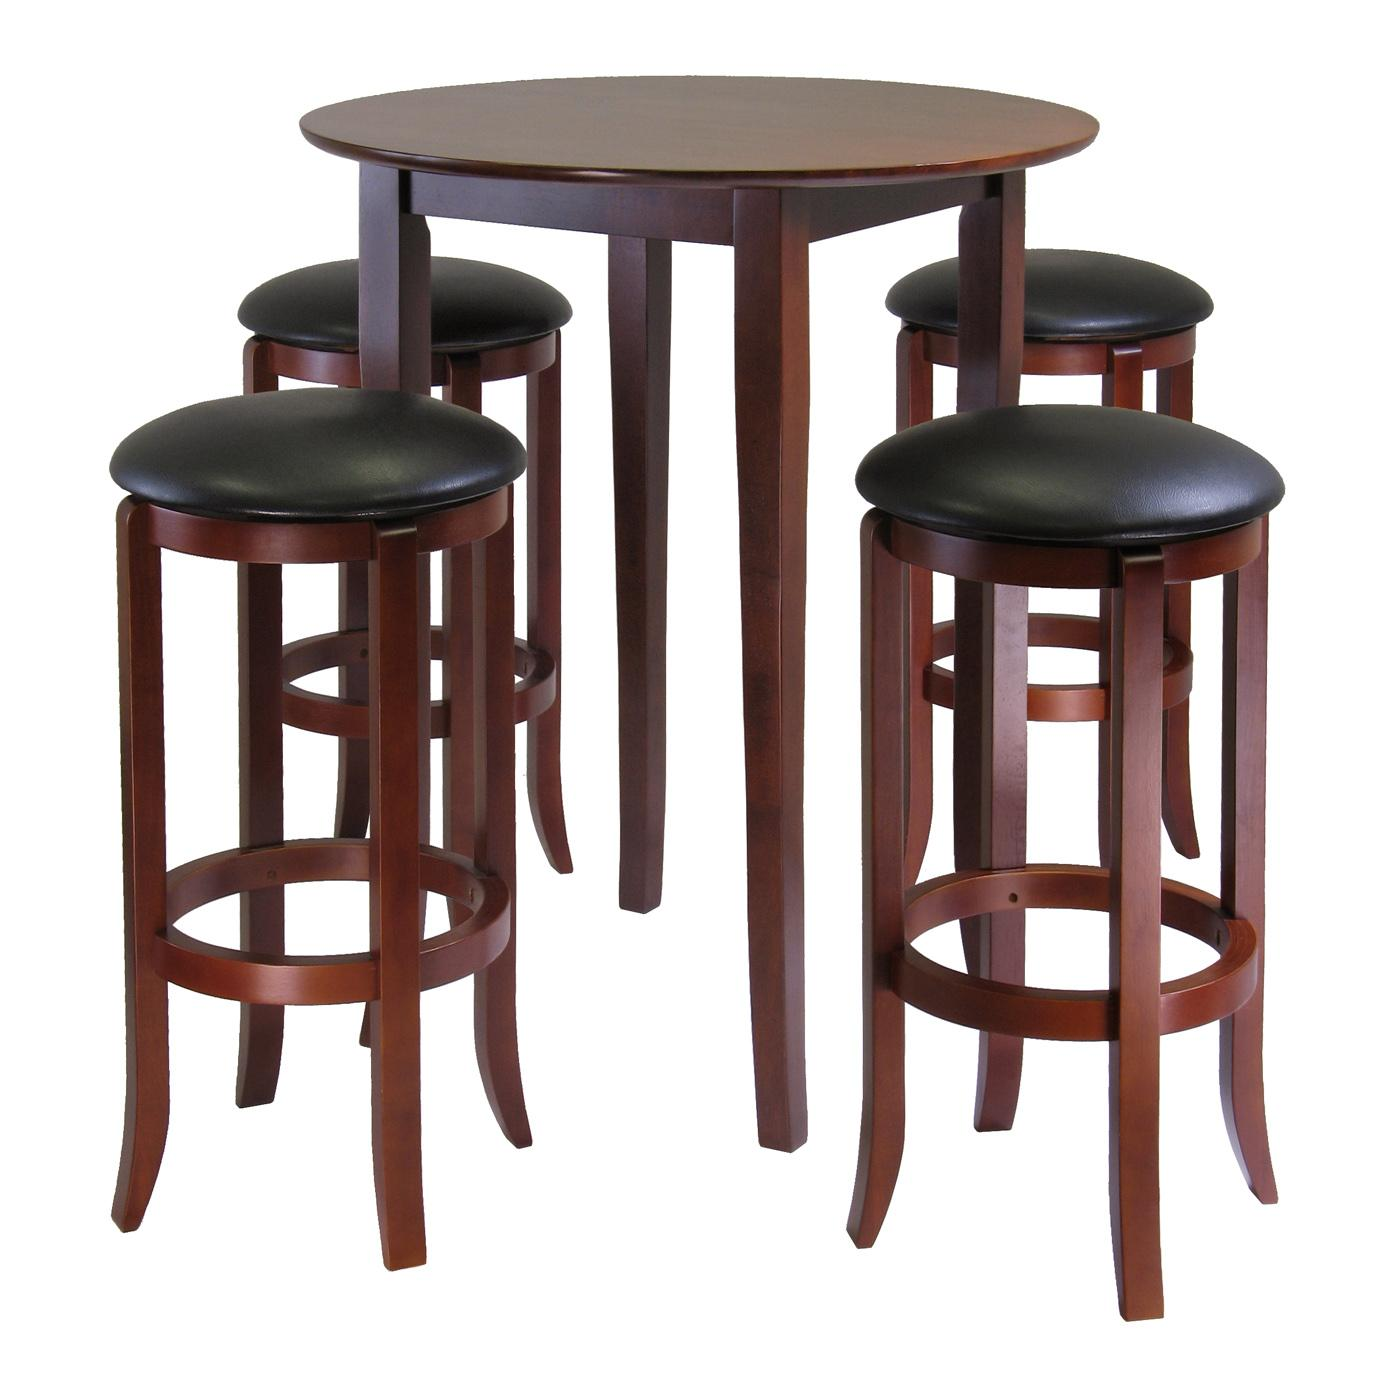 Bar Stools And Tables: Amazon.com: Winsome Fiona 5-Piece Round High Pub Table Set